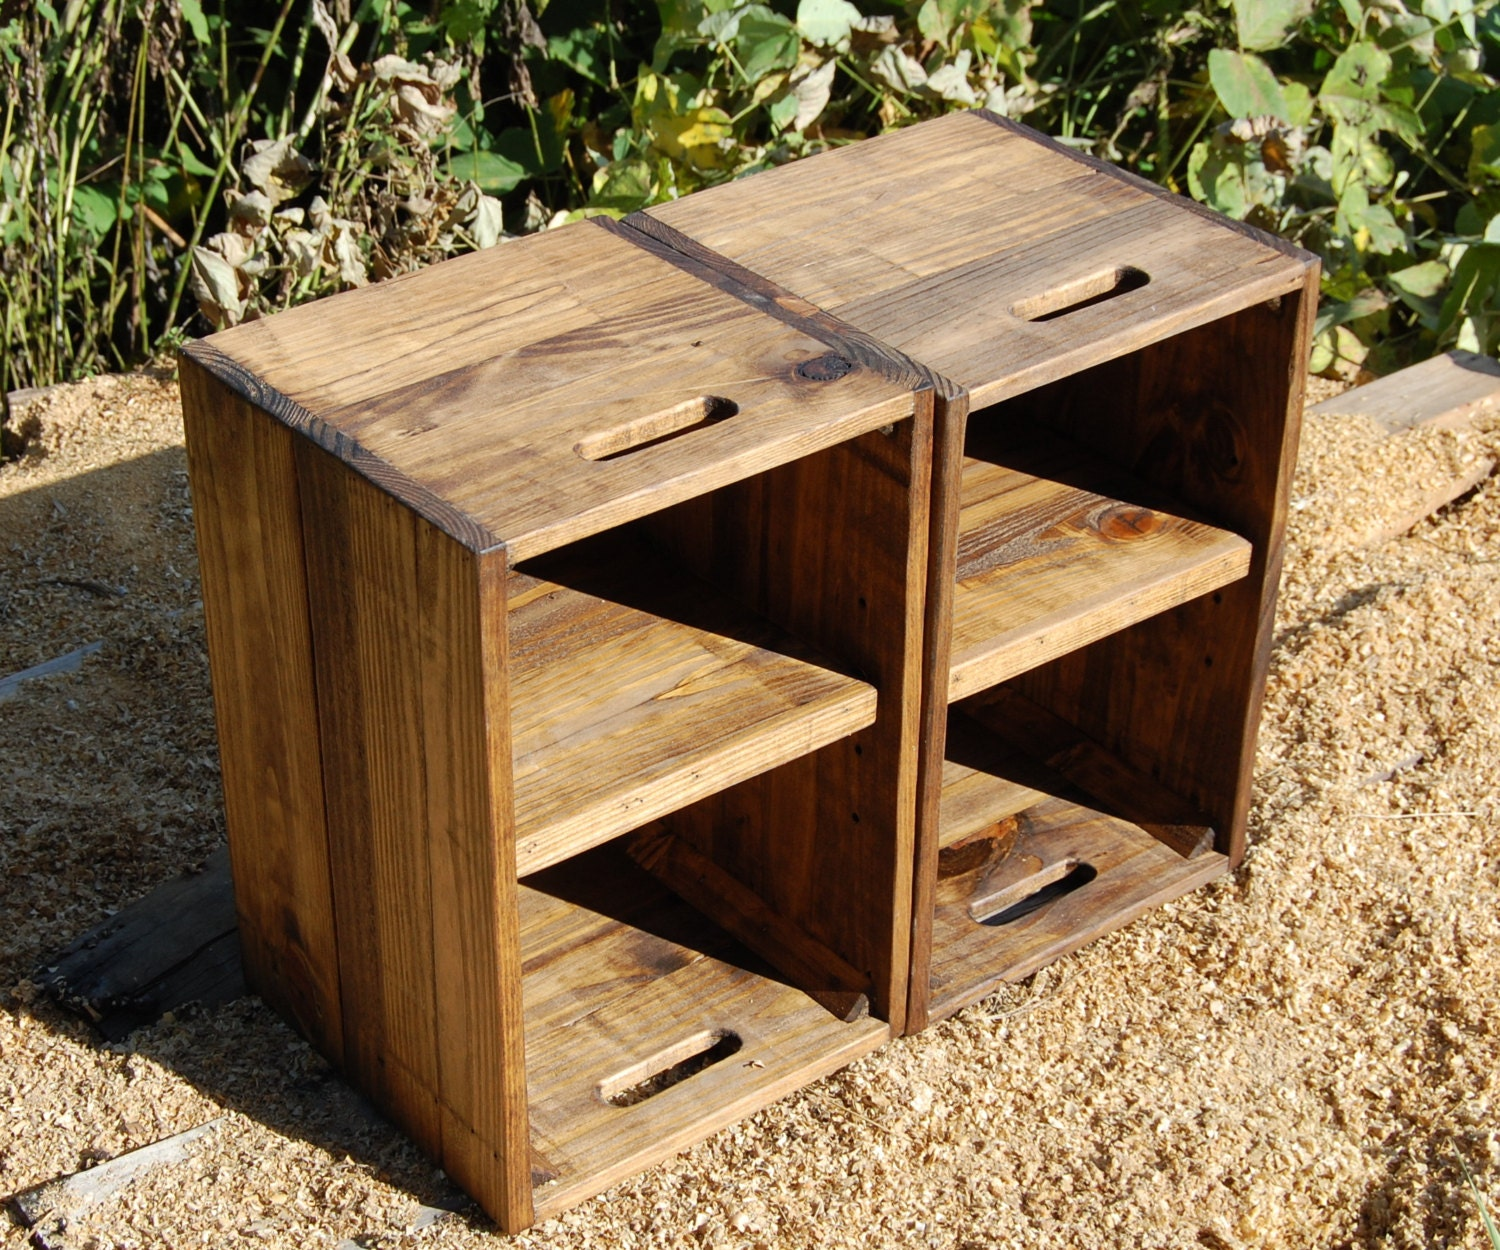 wooden crates nightstand pair of side tables reclaim wood. Black Bedroom Furniture Sets. Home Design Ideas